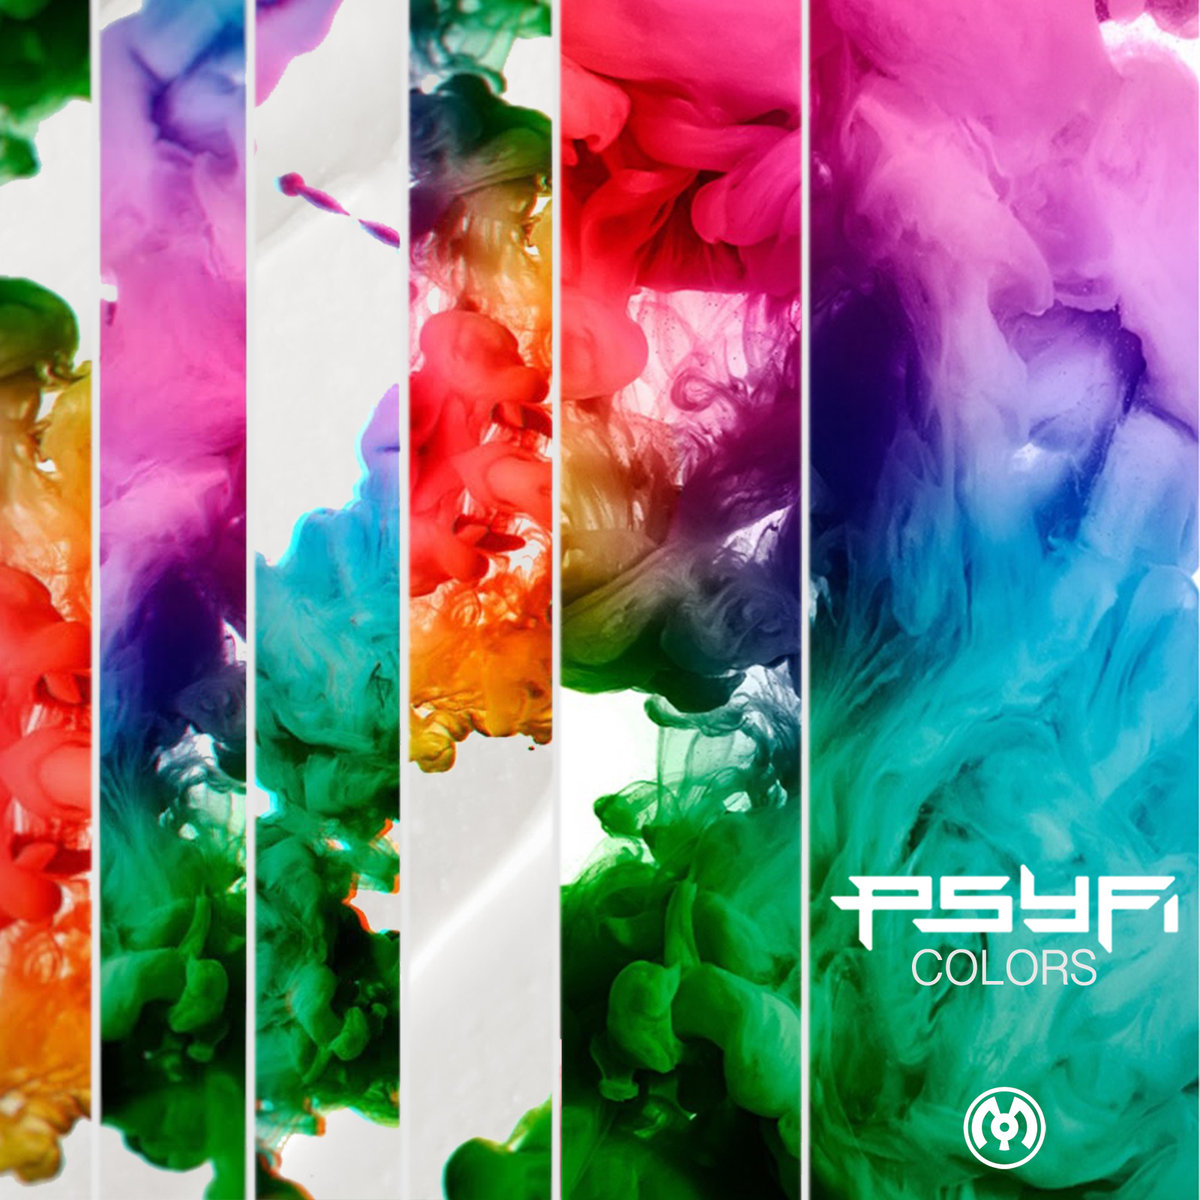 Psy Fi - Redliner (Hypha Remix) @ 'Colors' album (electronic, dubstep)